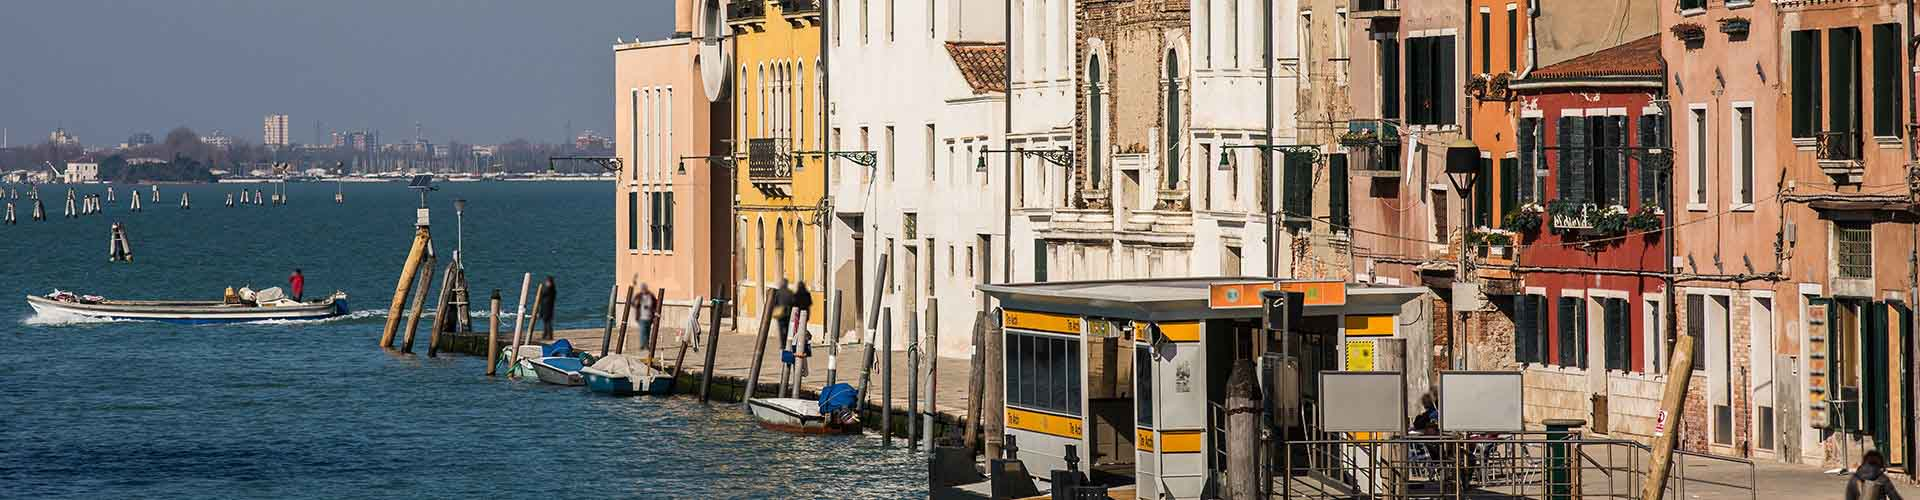 Venice – Hotels in Sestiere Cannaregio. Maps of Venice, Photos and Reviews for each Hotel in Venice.